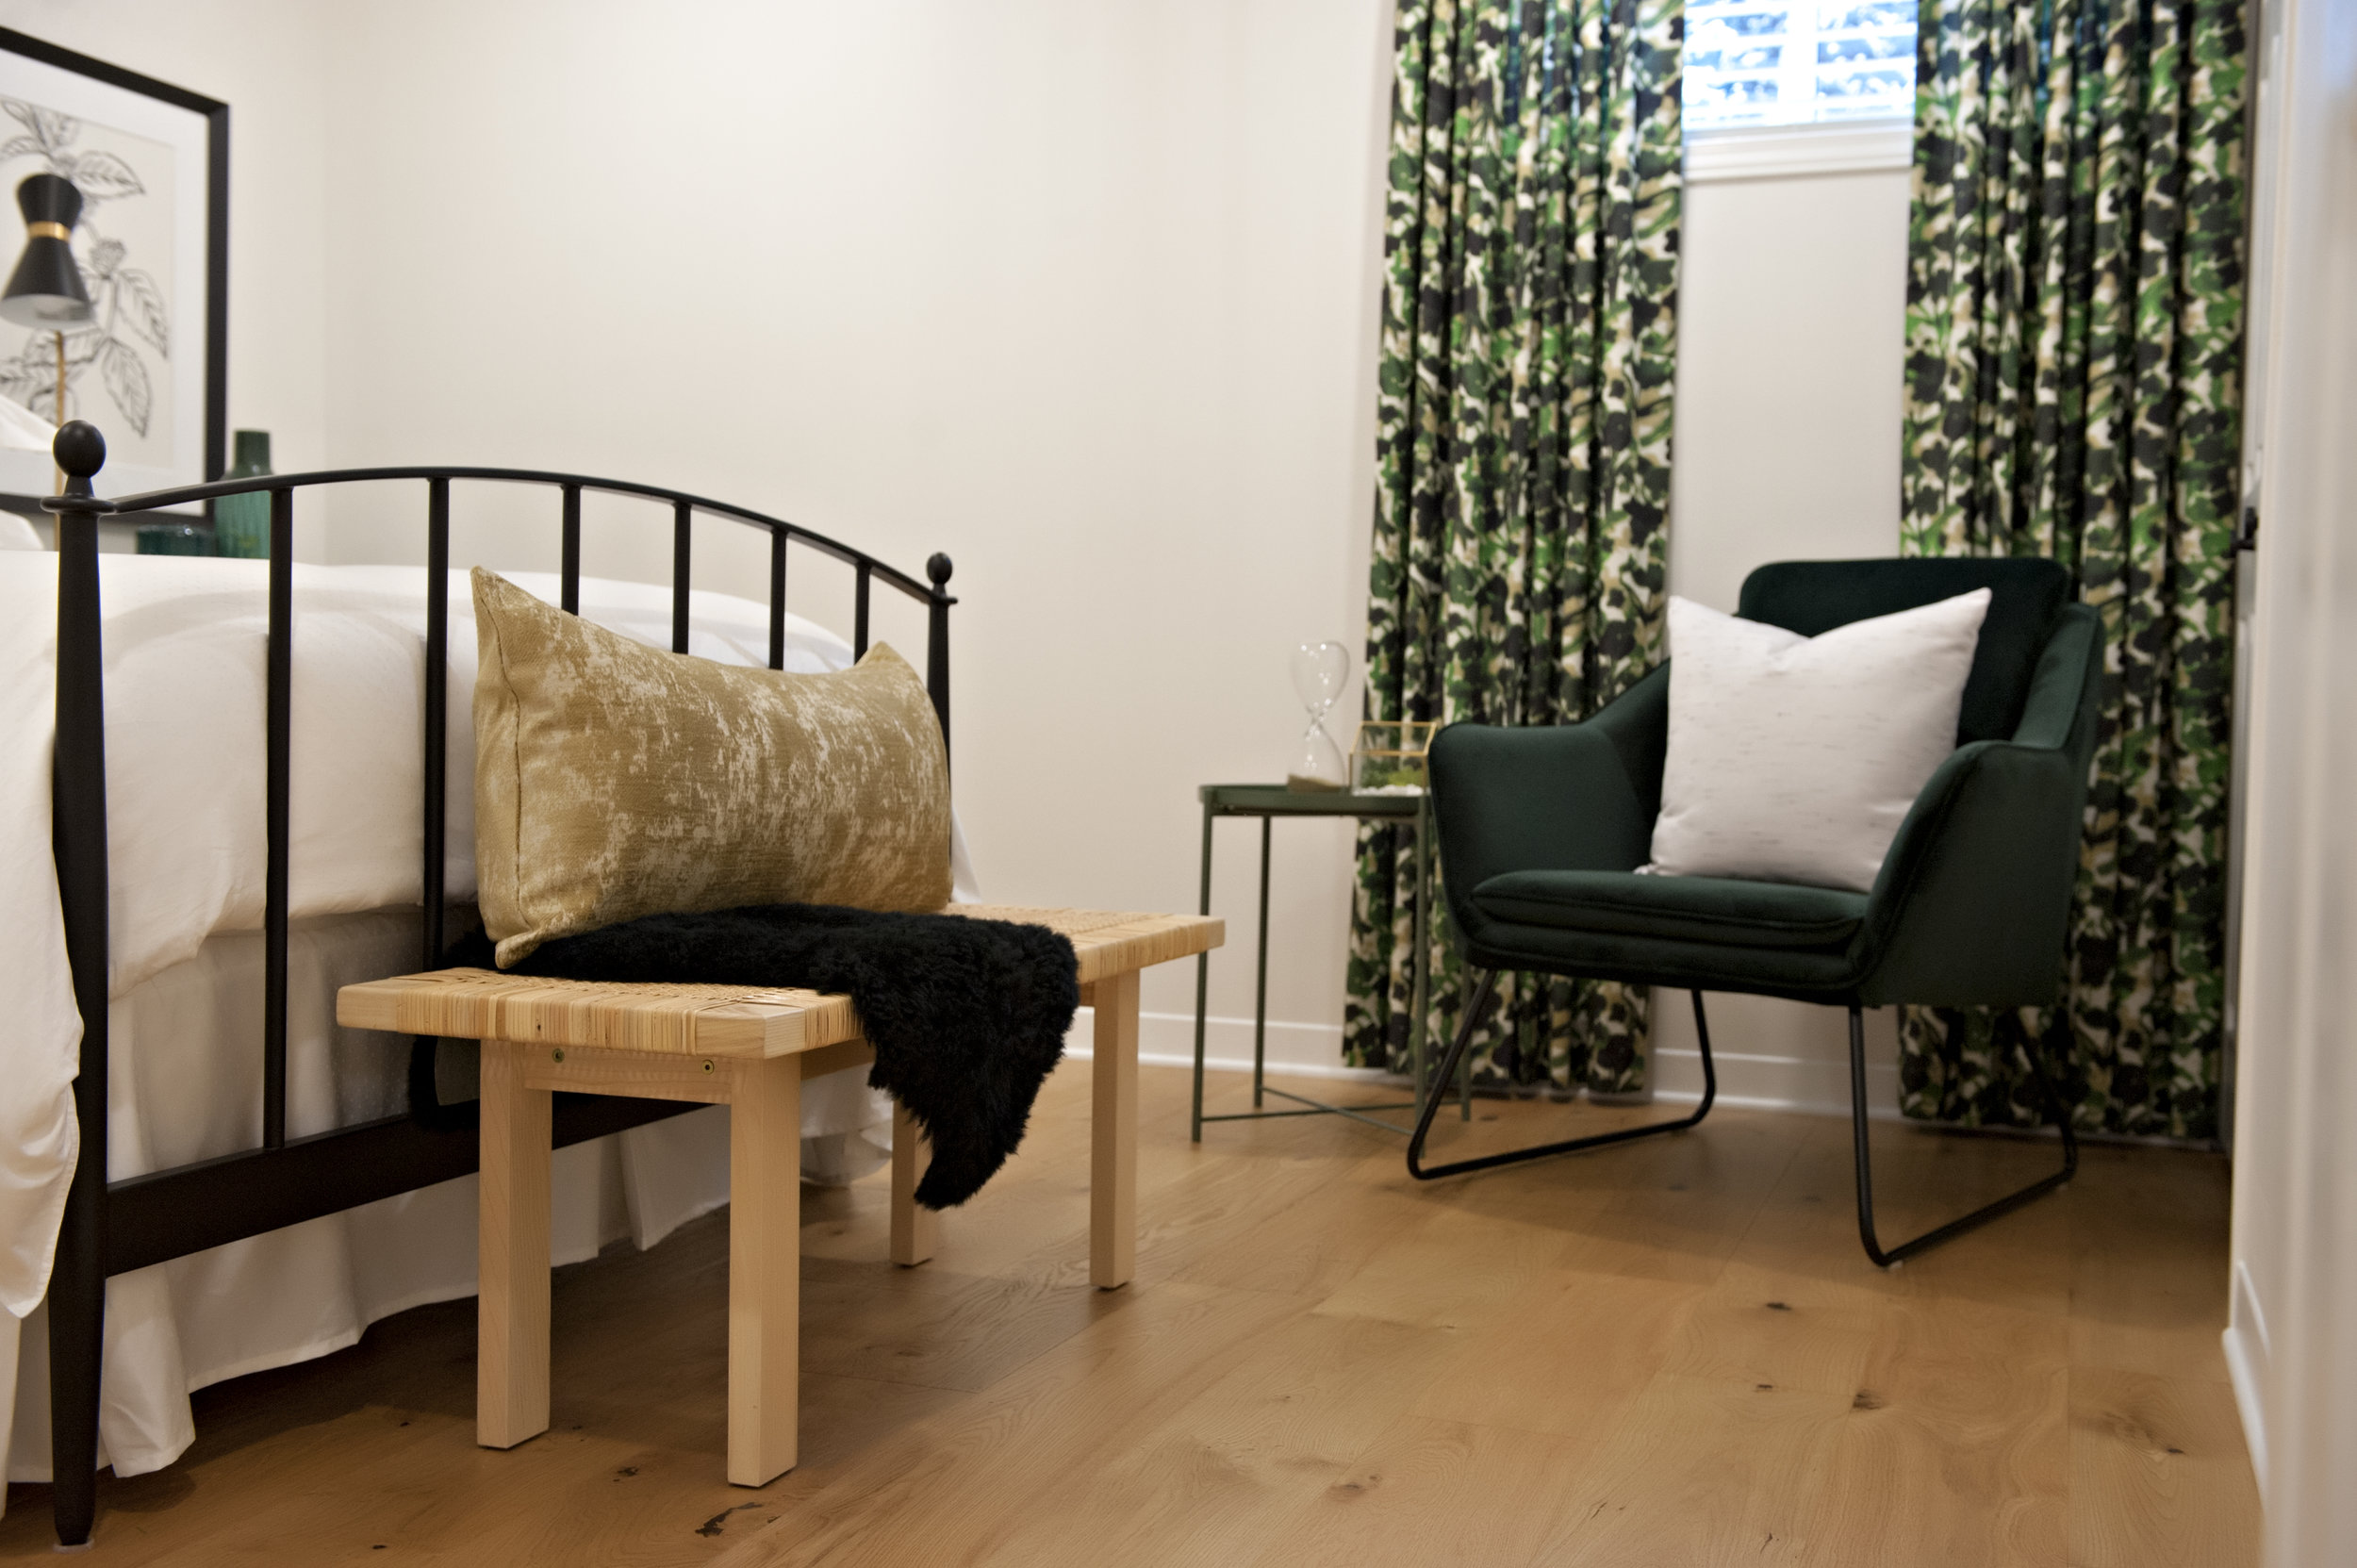 cedar-brae-basement-bedroom-rattan-bench